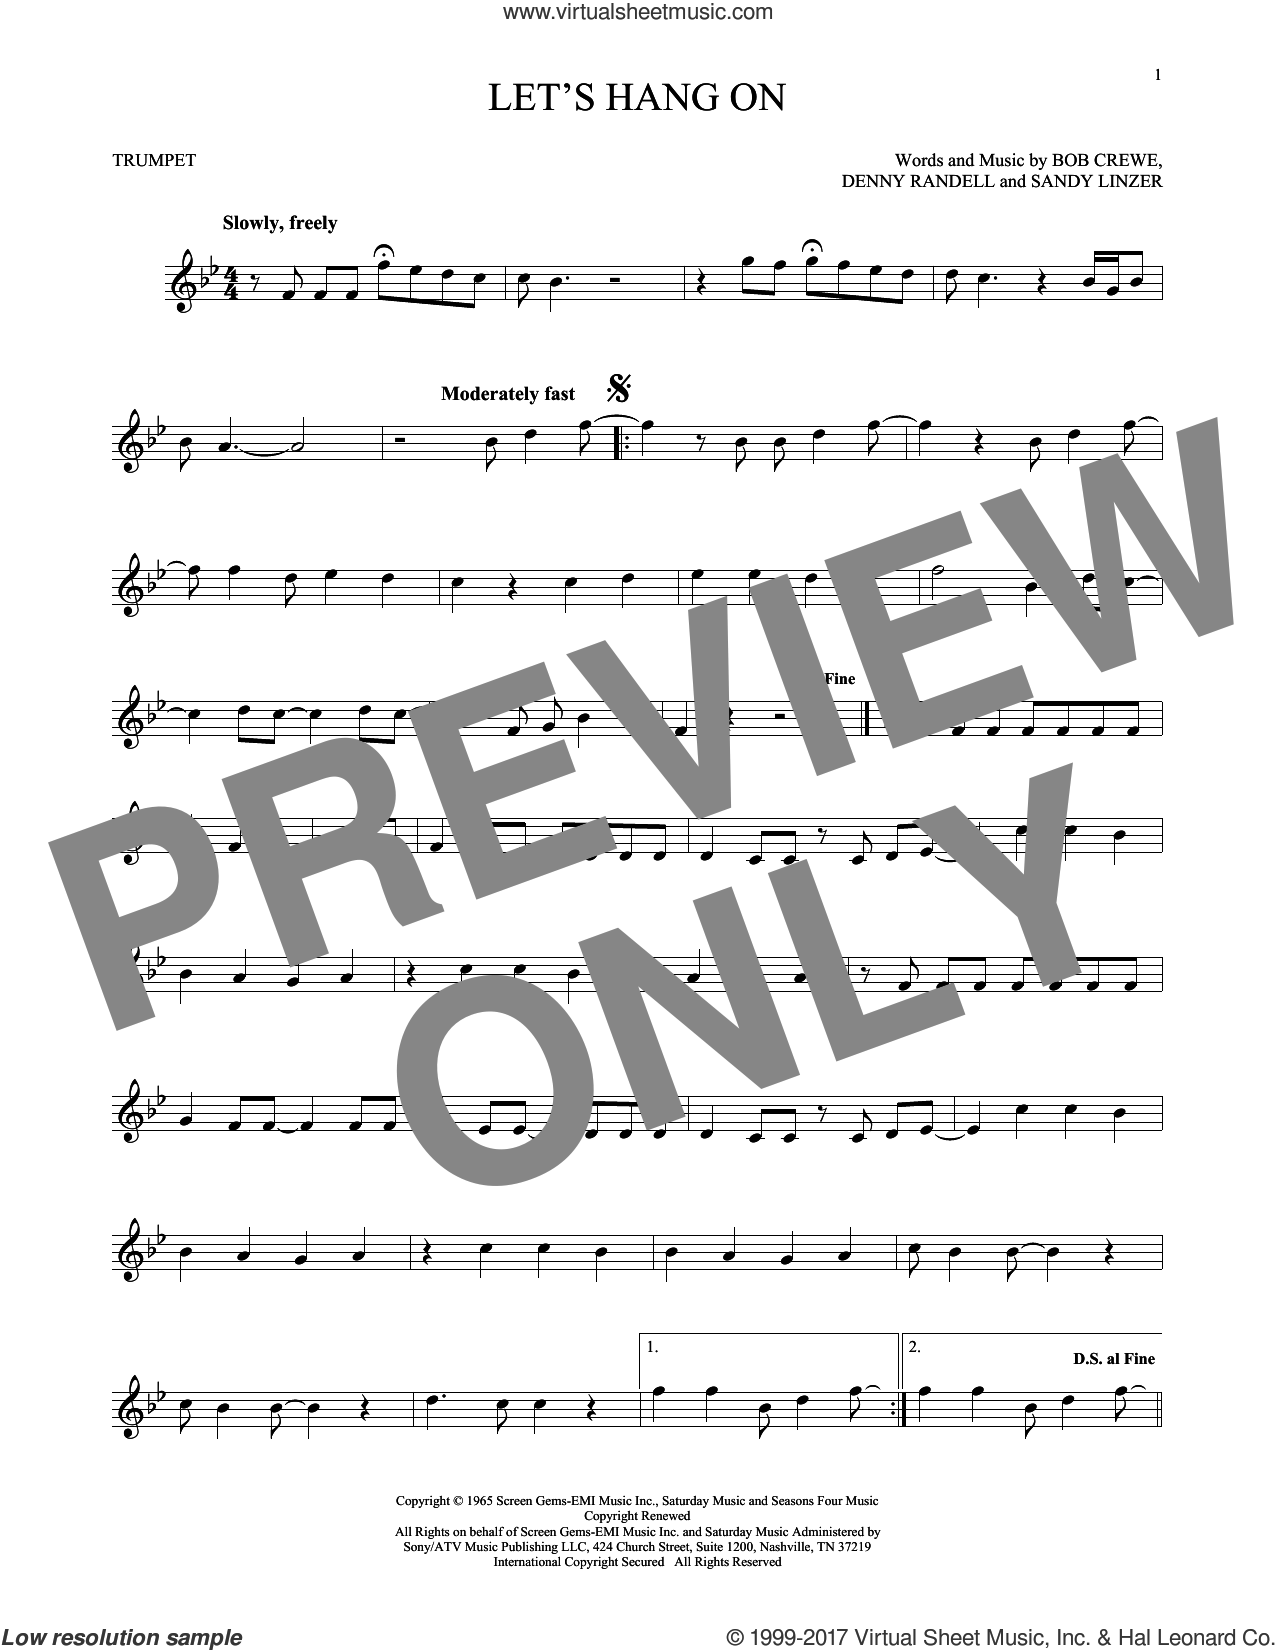 Let's Hang On sheet music for trumpet solo by The 4 Seasons, Bob Crewe, Denny Randell and Sandy Linzer, intermediate skill level